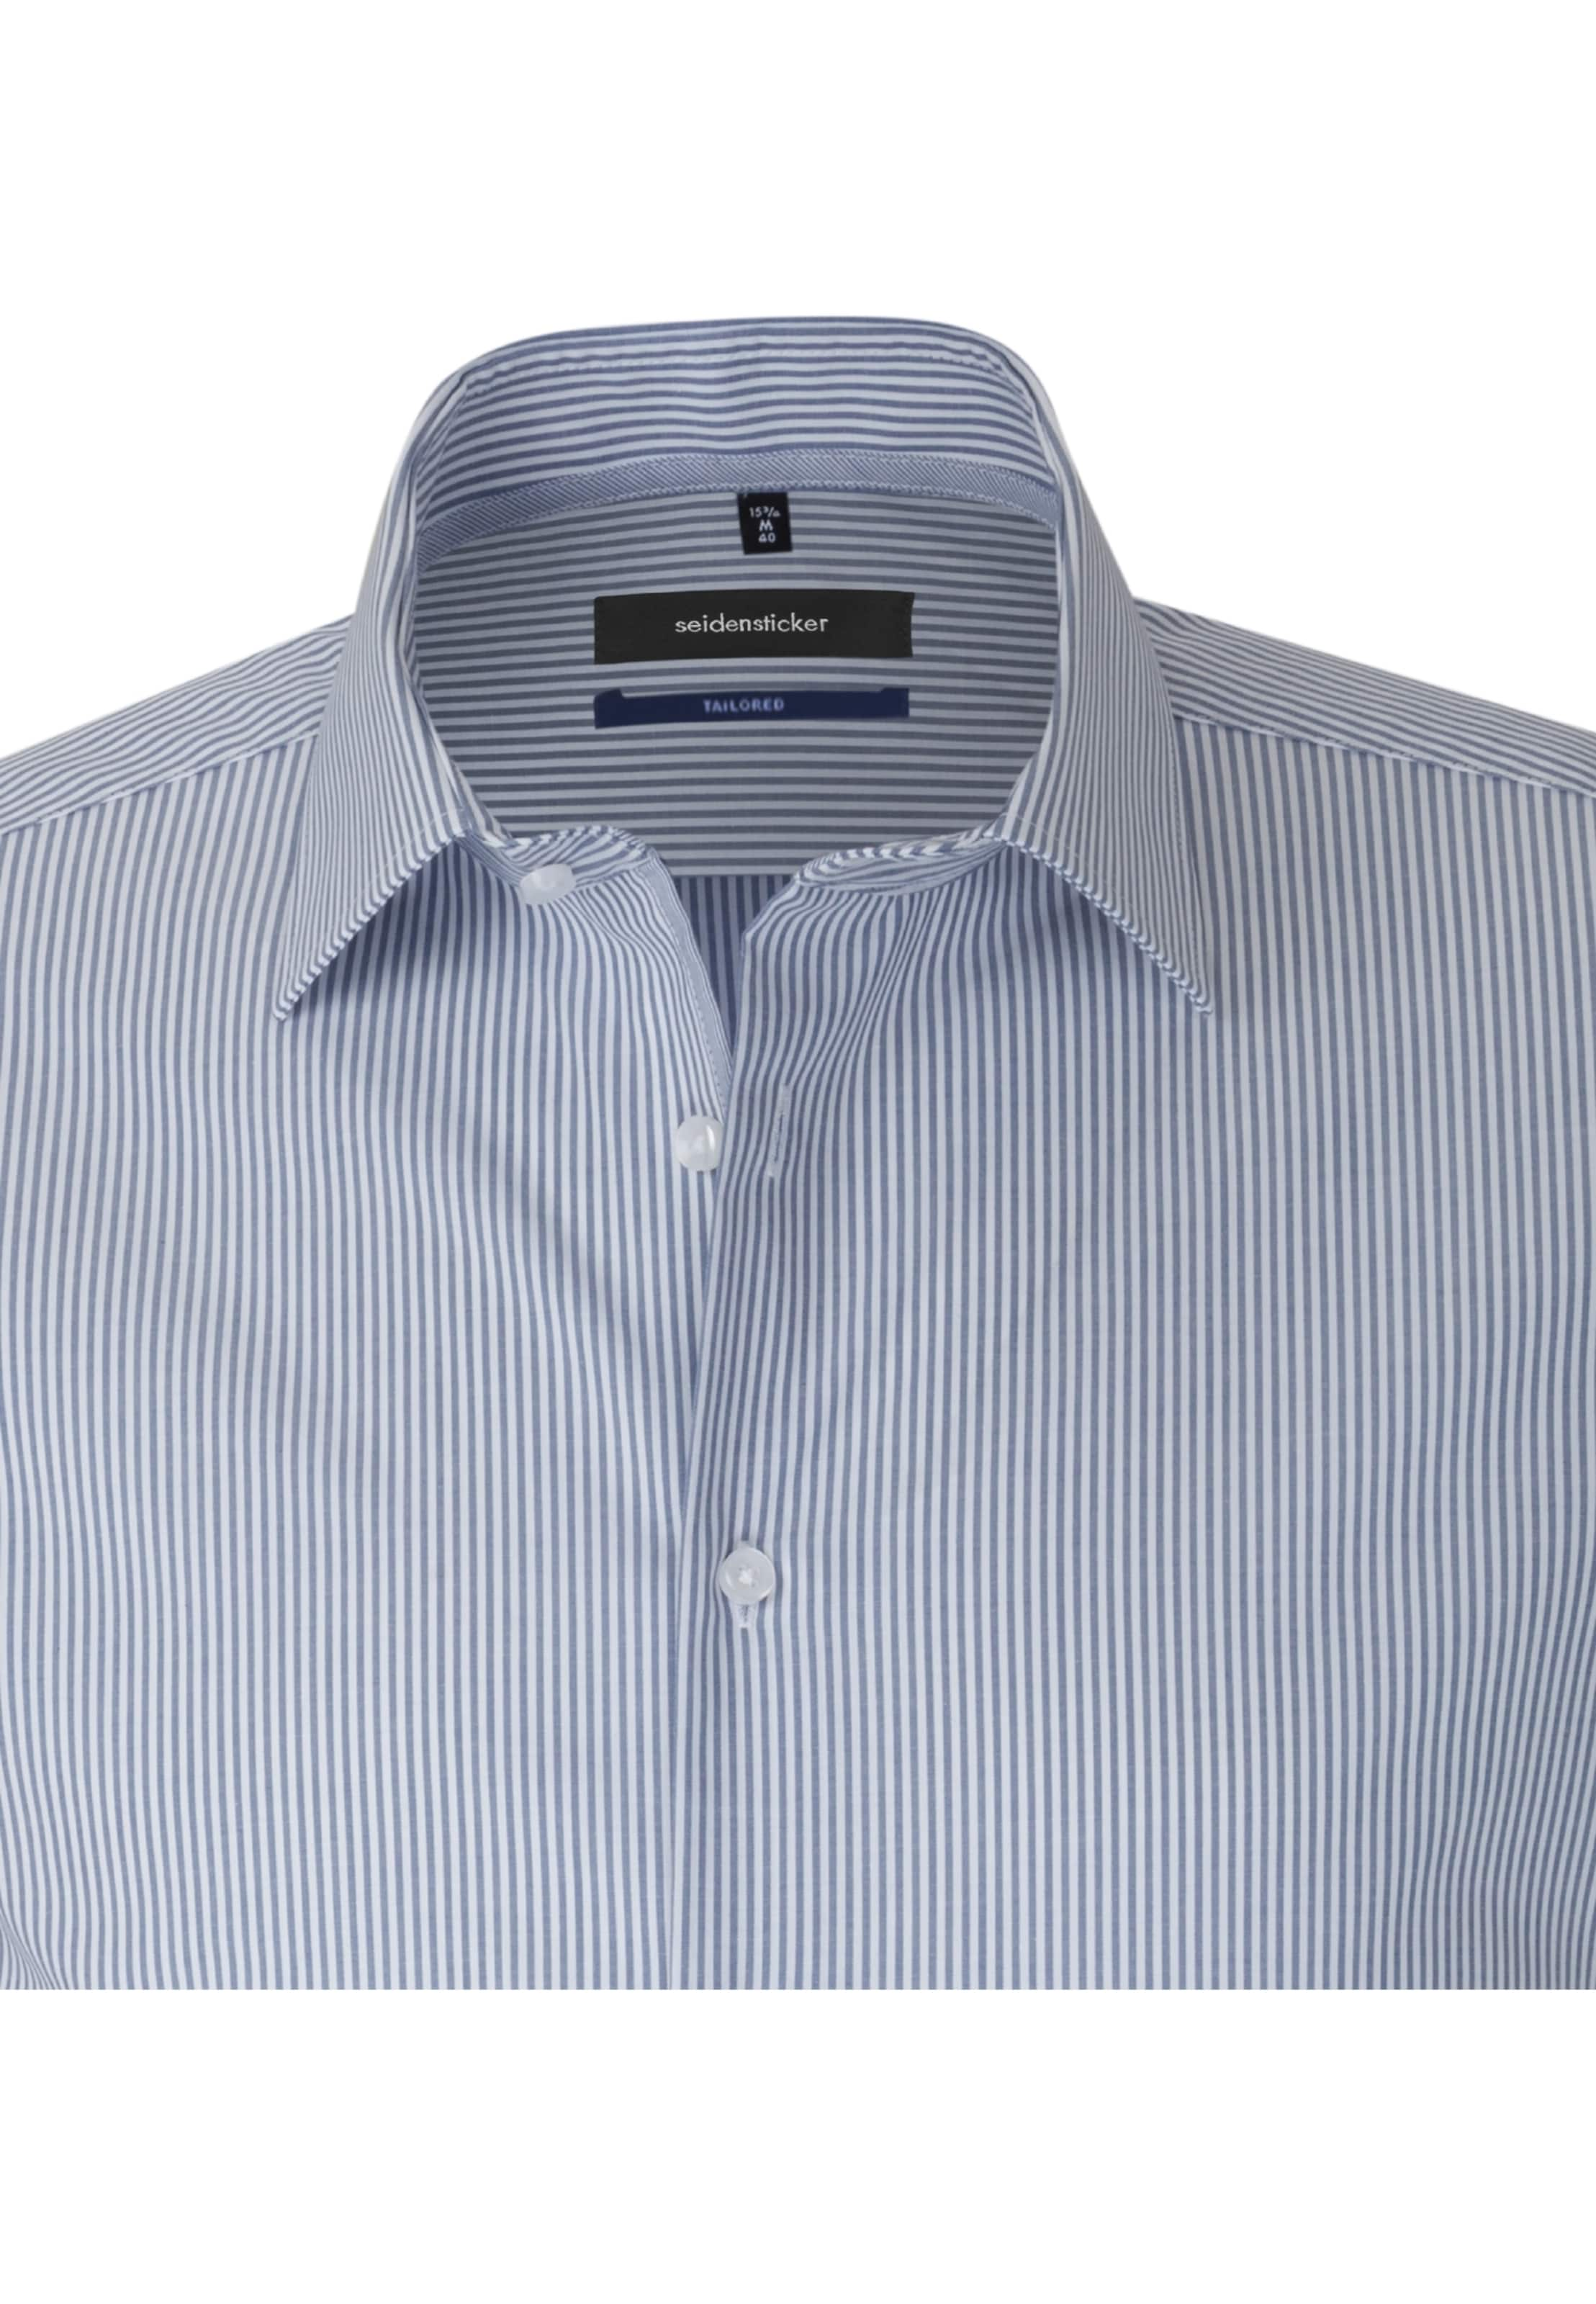 Seidensticker En ' Chemise Business Tailored BleuBlanc JcTlFuK351